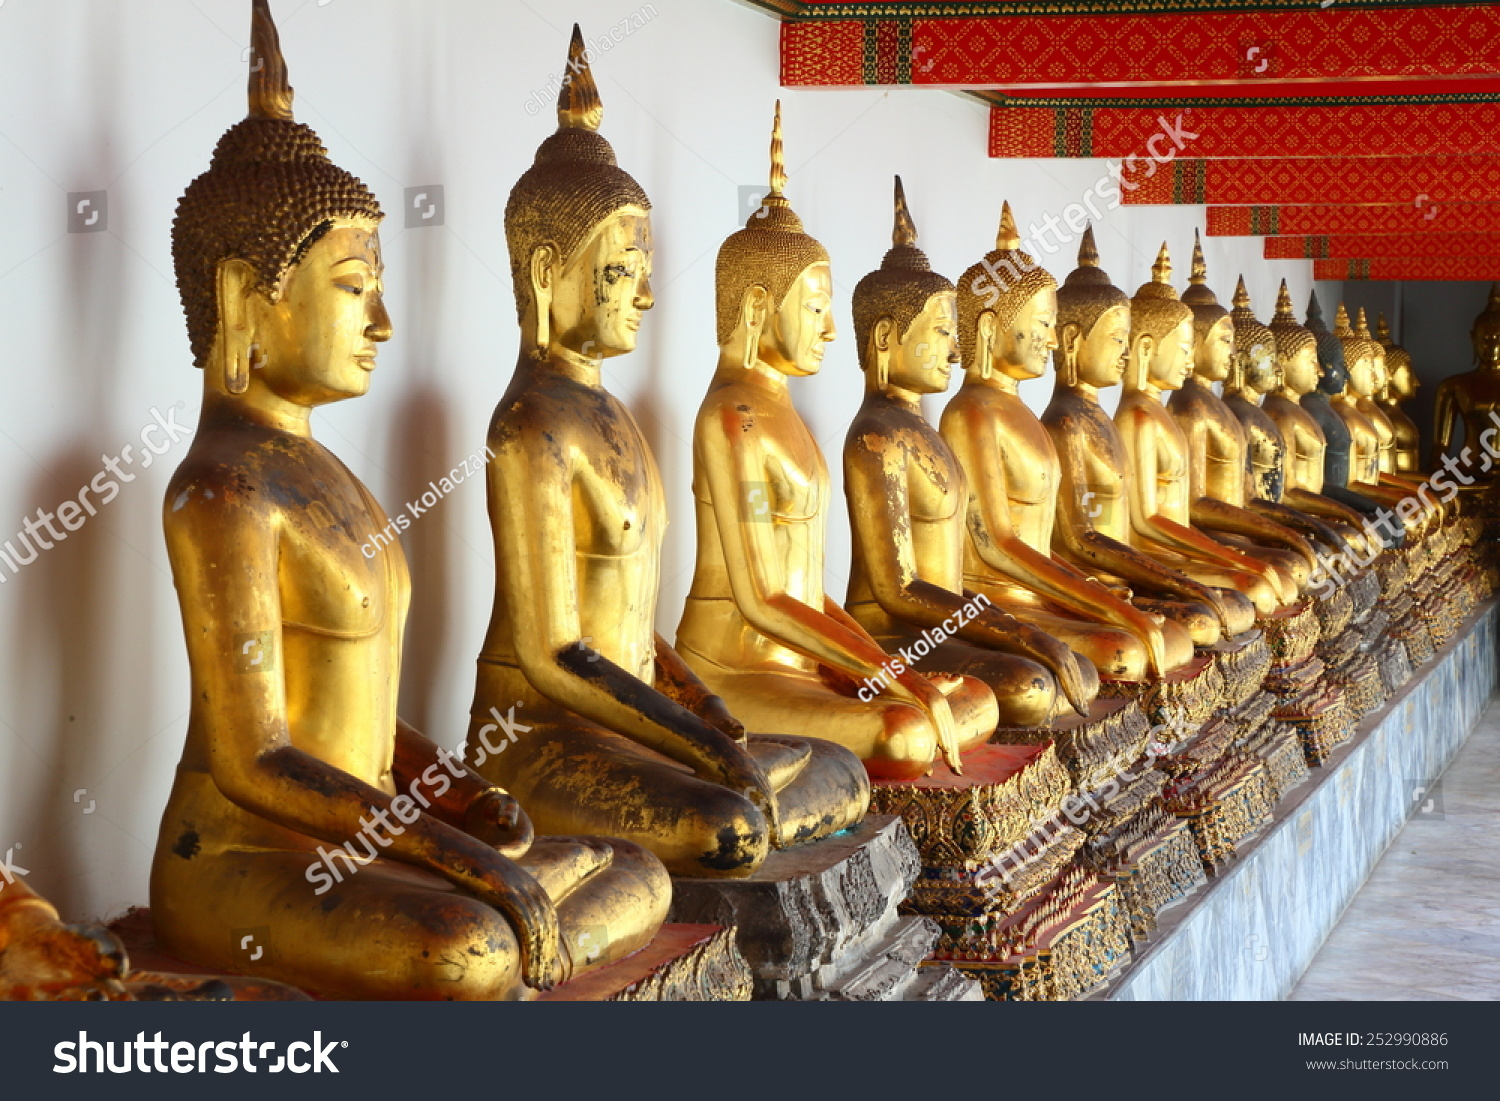 Series ancient golden buddha statues lined stock photo 252990886 a series of ancient golden buddha statues lined up in a row a beautiful collection biocorpaavc Choice Image